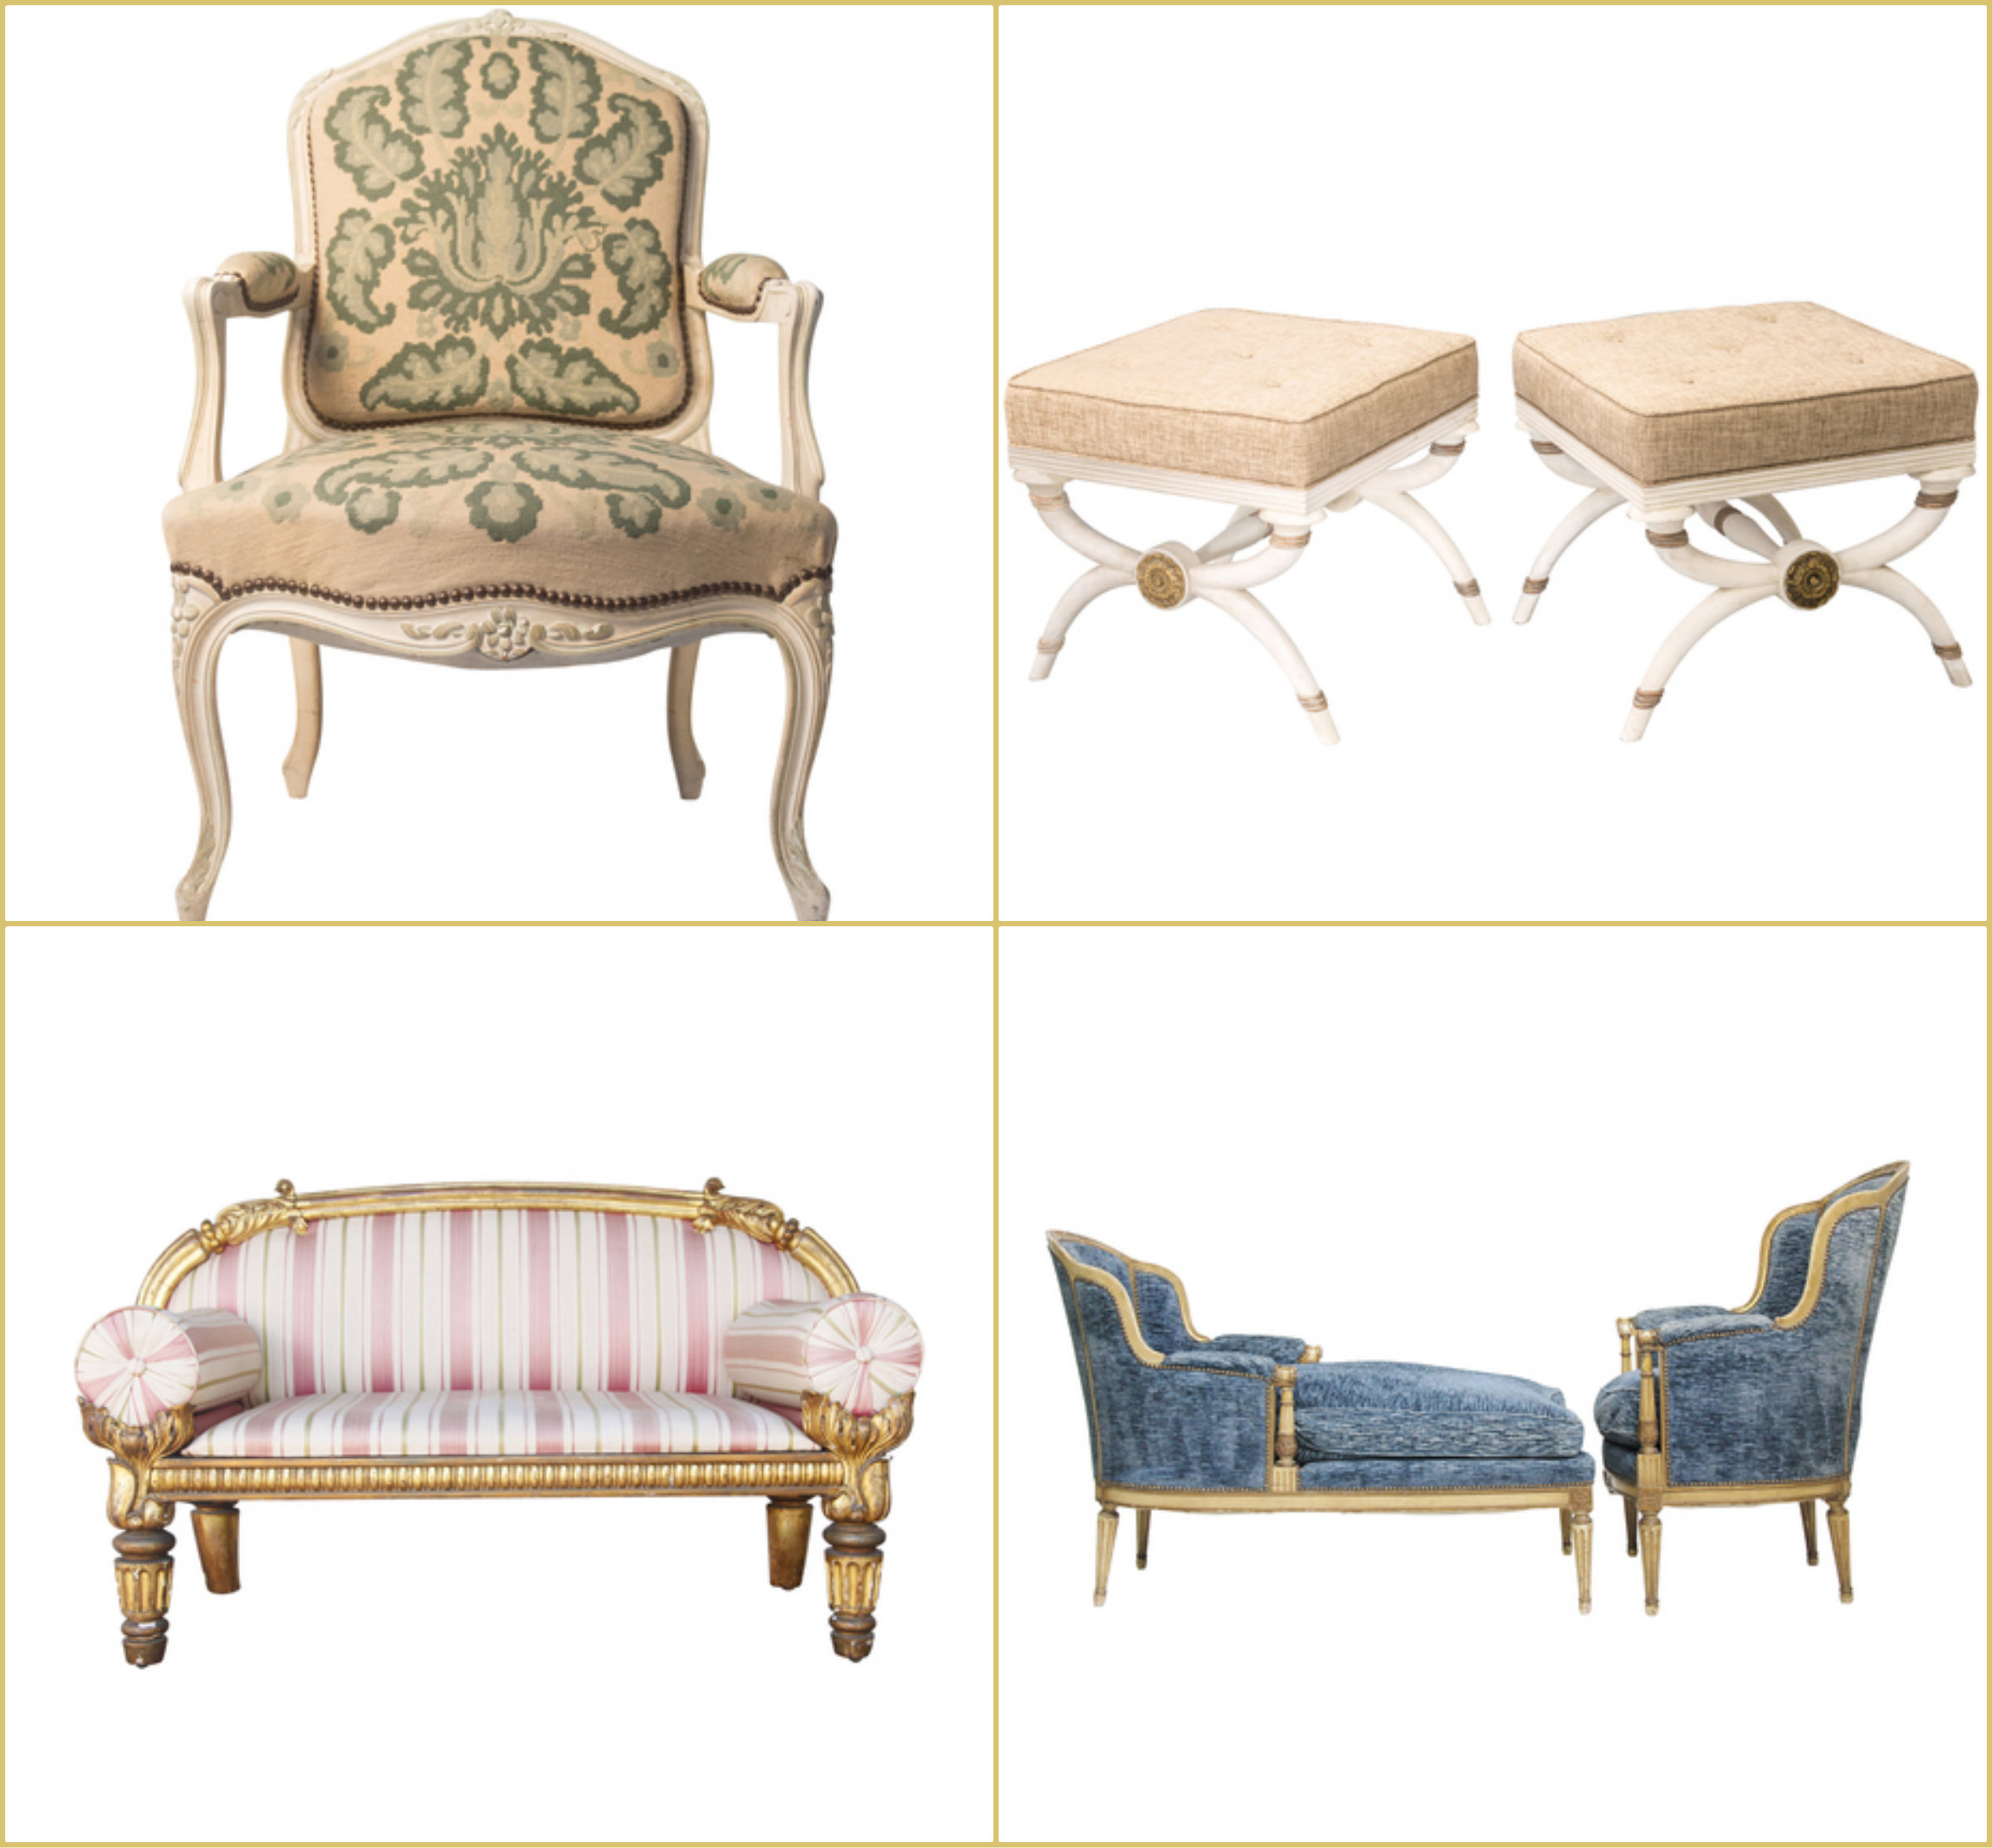 the high boy online antique dealer decorating french louis xvi chair yellow blue gold striped bench seat sofa better decorating bible blog online antiques shop buy italian site like 1st dibs 1